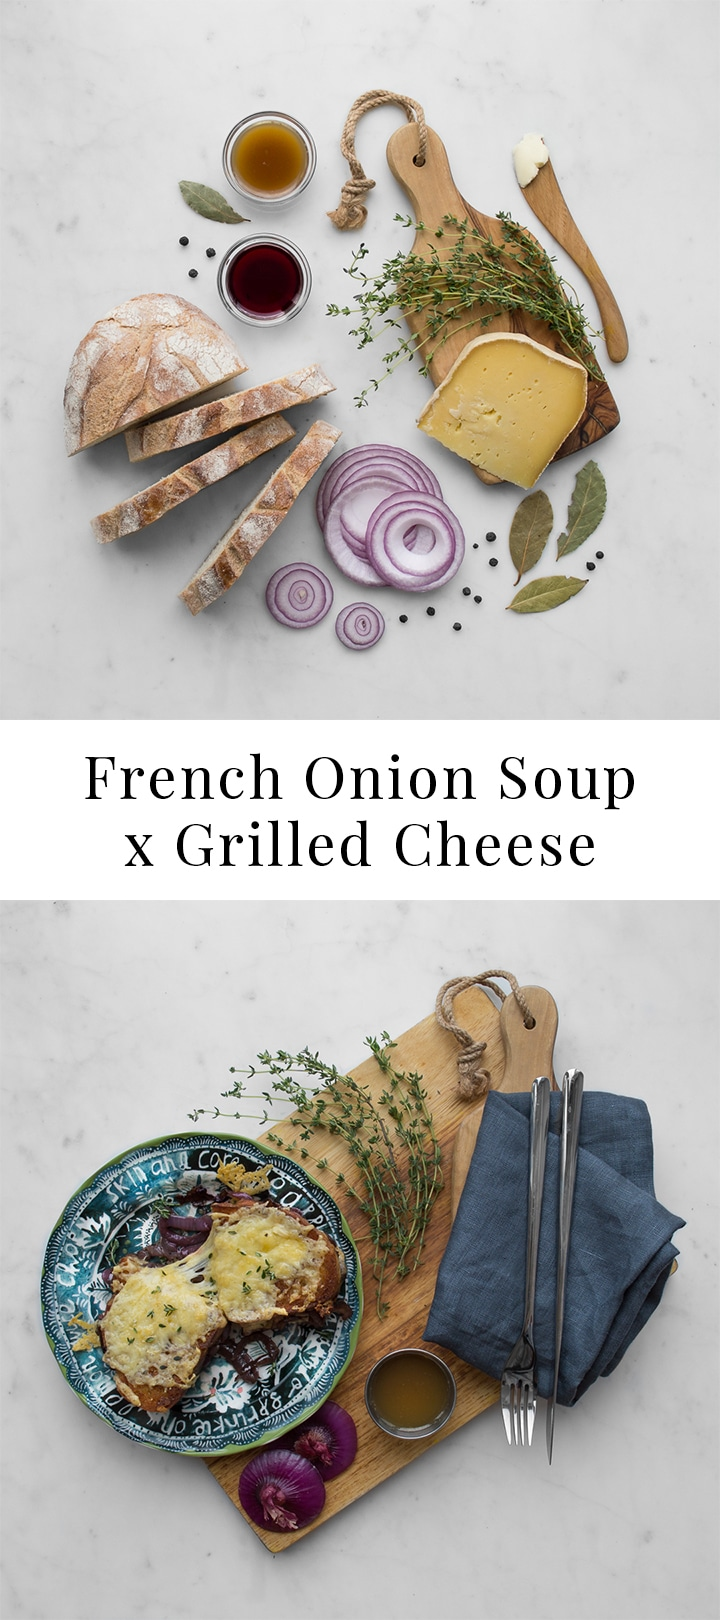 With all the robust flavours of a French Onion Soup, ourFrench Onion Grilled Cheese is made memorable by the addition of a broth-soaked slice of bread between the melted cheese, red wine caramelized onions and crispy top and bottom slices that instantly turns a one-dimensional grilled cheese into a three-dimensional GRILLED CHEESE!